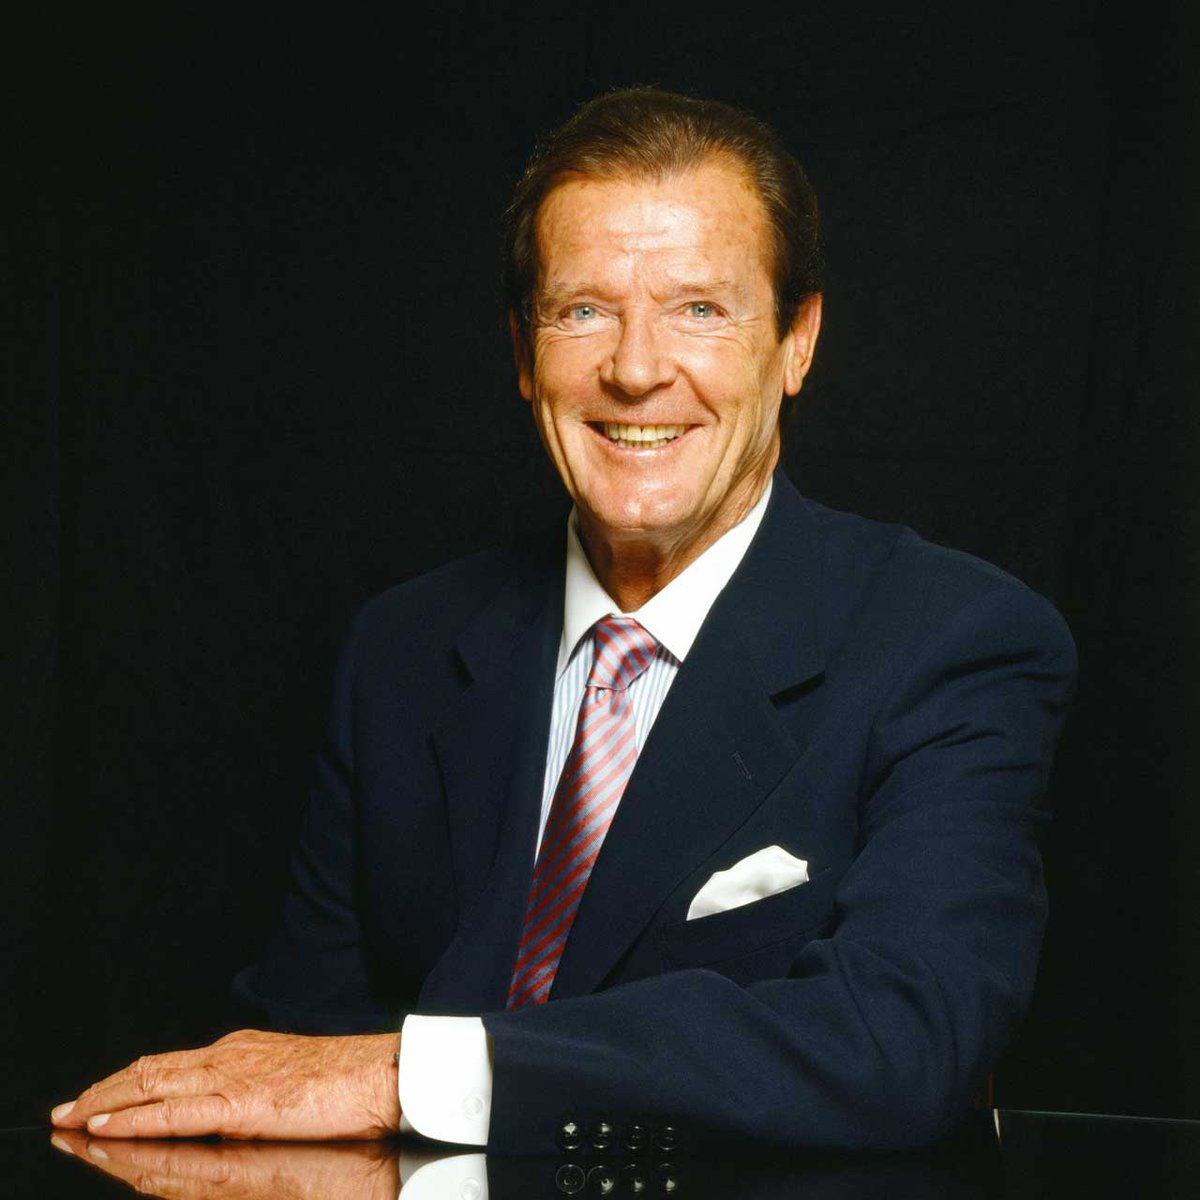 Legendary 007 star Roger Moore is coming 23 Oct @Grand_Theatre http://t.co/kSJw4hBx4F @sirrogermoore @mooreontouruk http://t.co/uVzHXVshhr